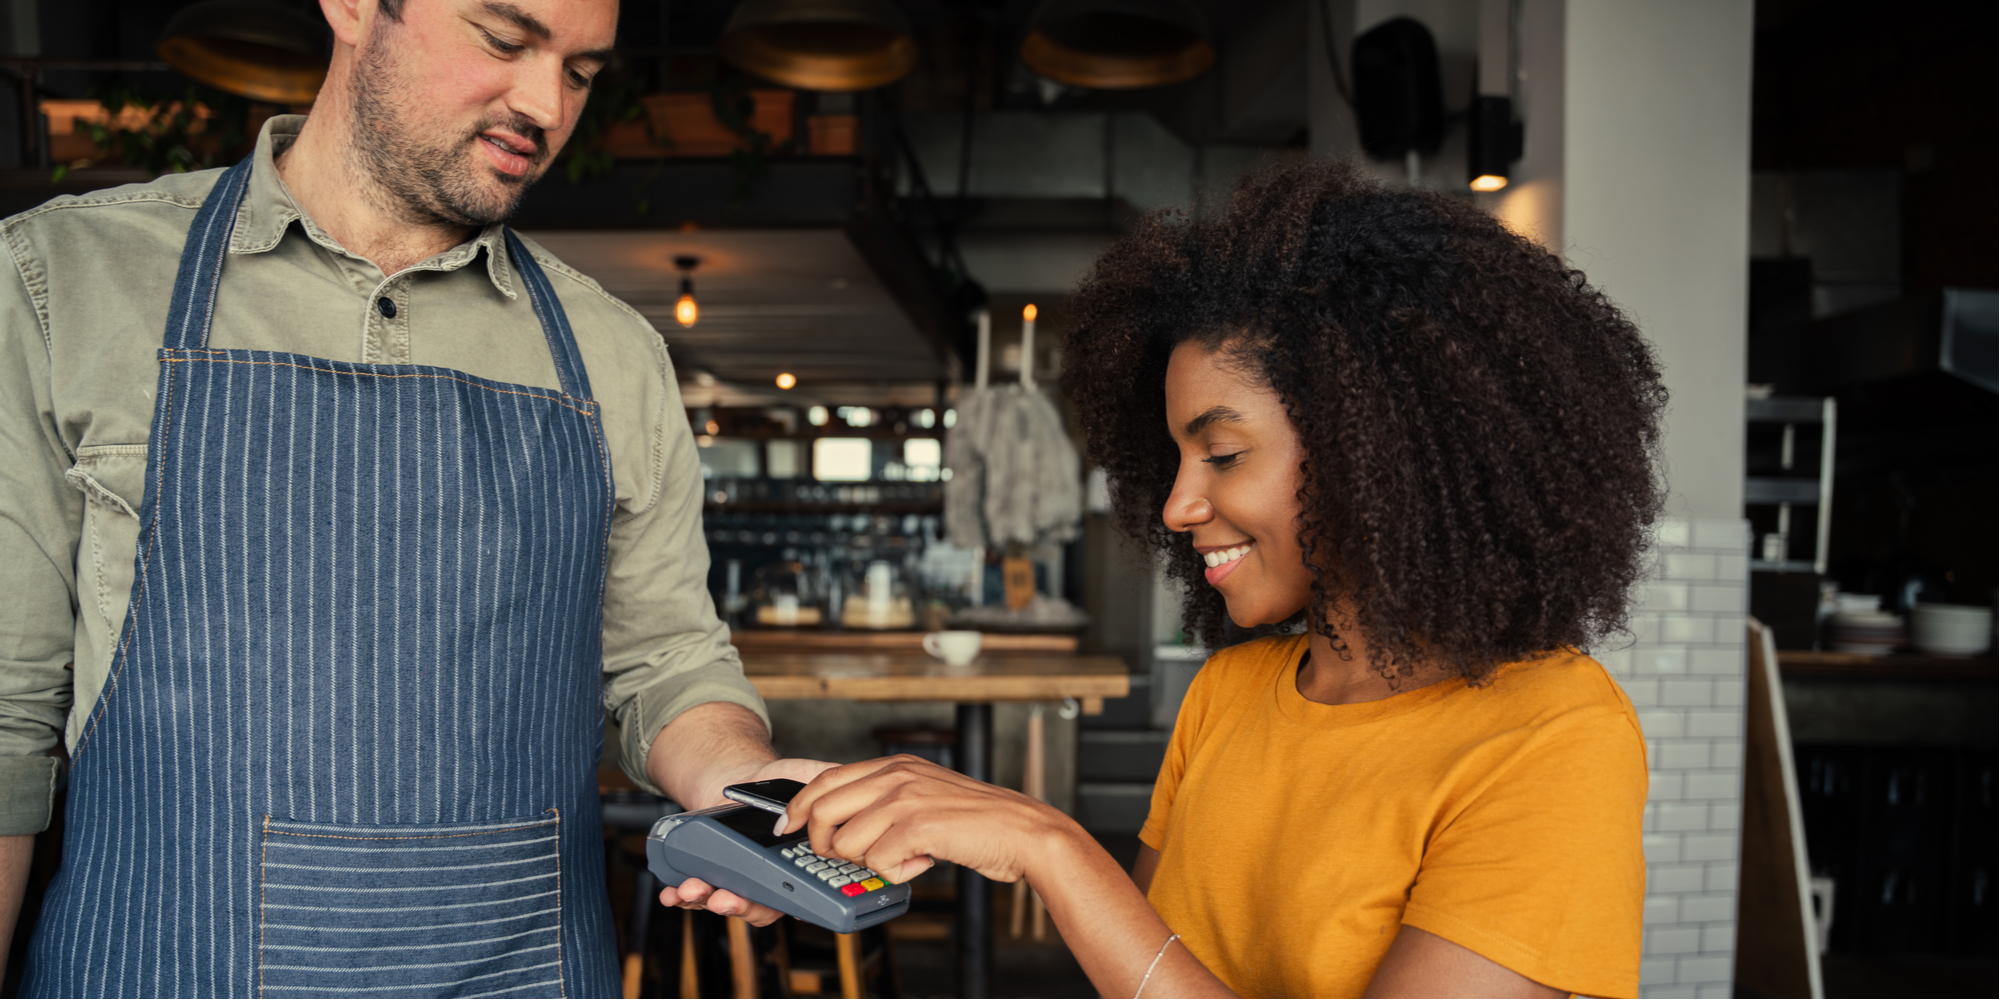 The Future of Consumer Payments